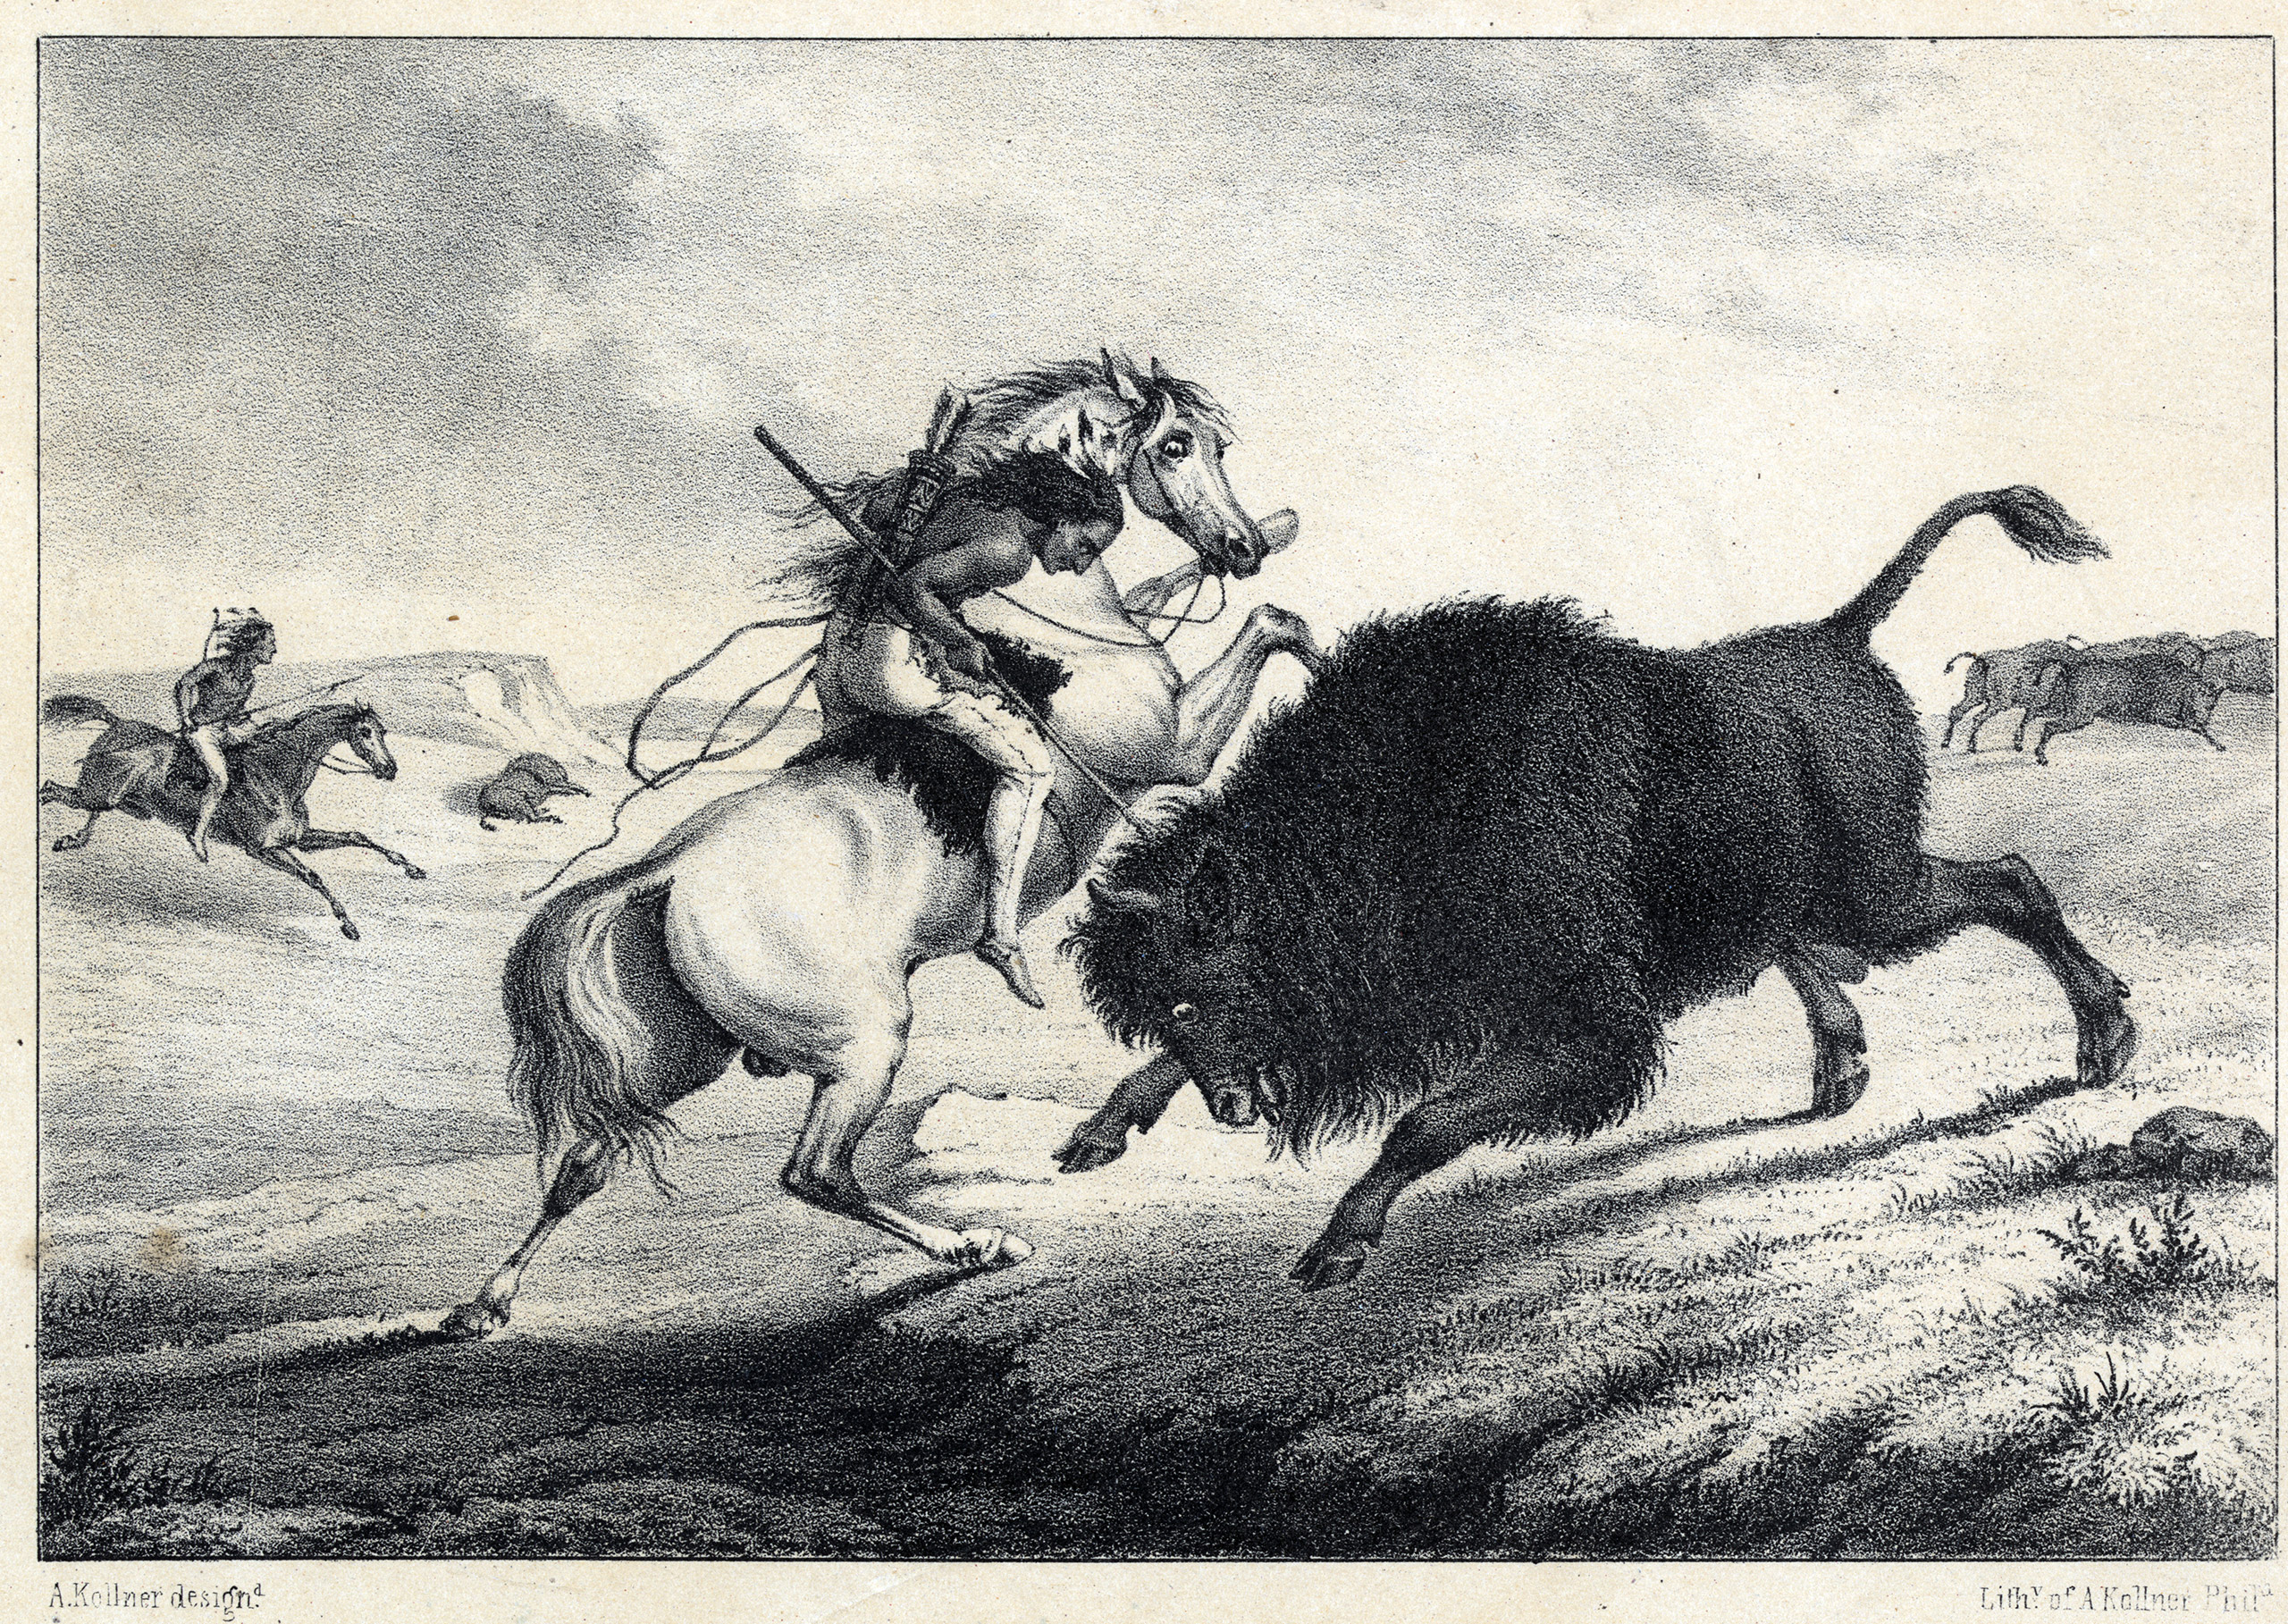 Lithograph of an American Indian on horseback killing a bison. Circa 1850-1860.